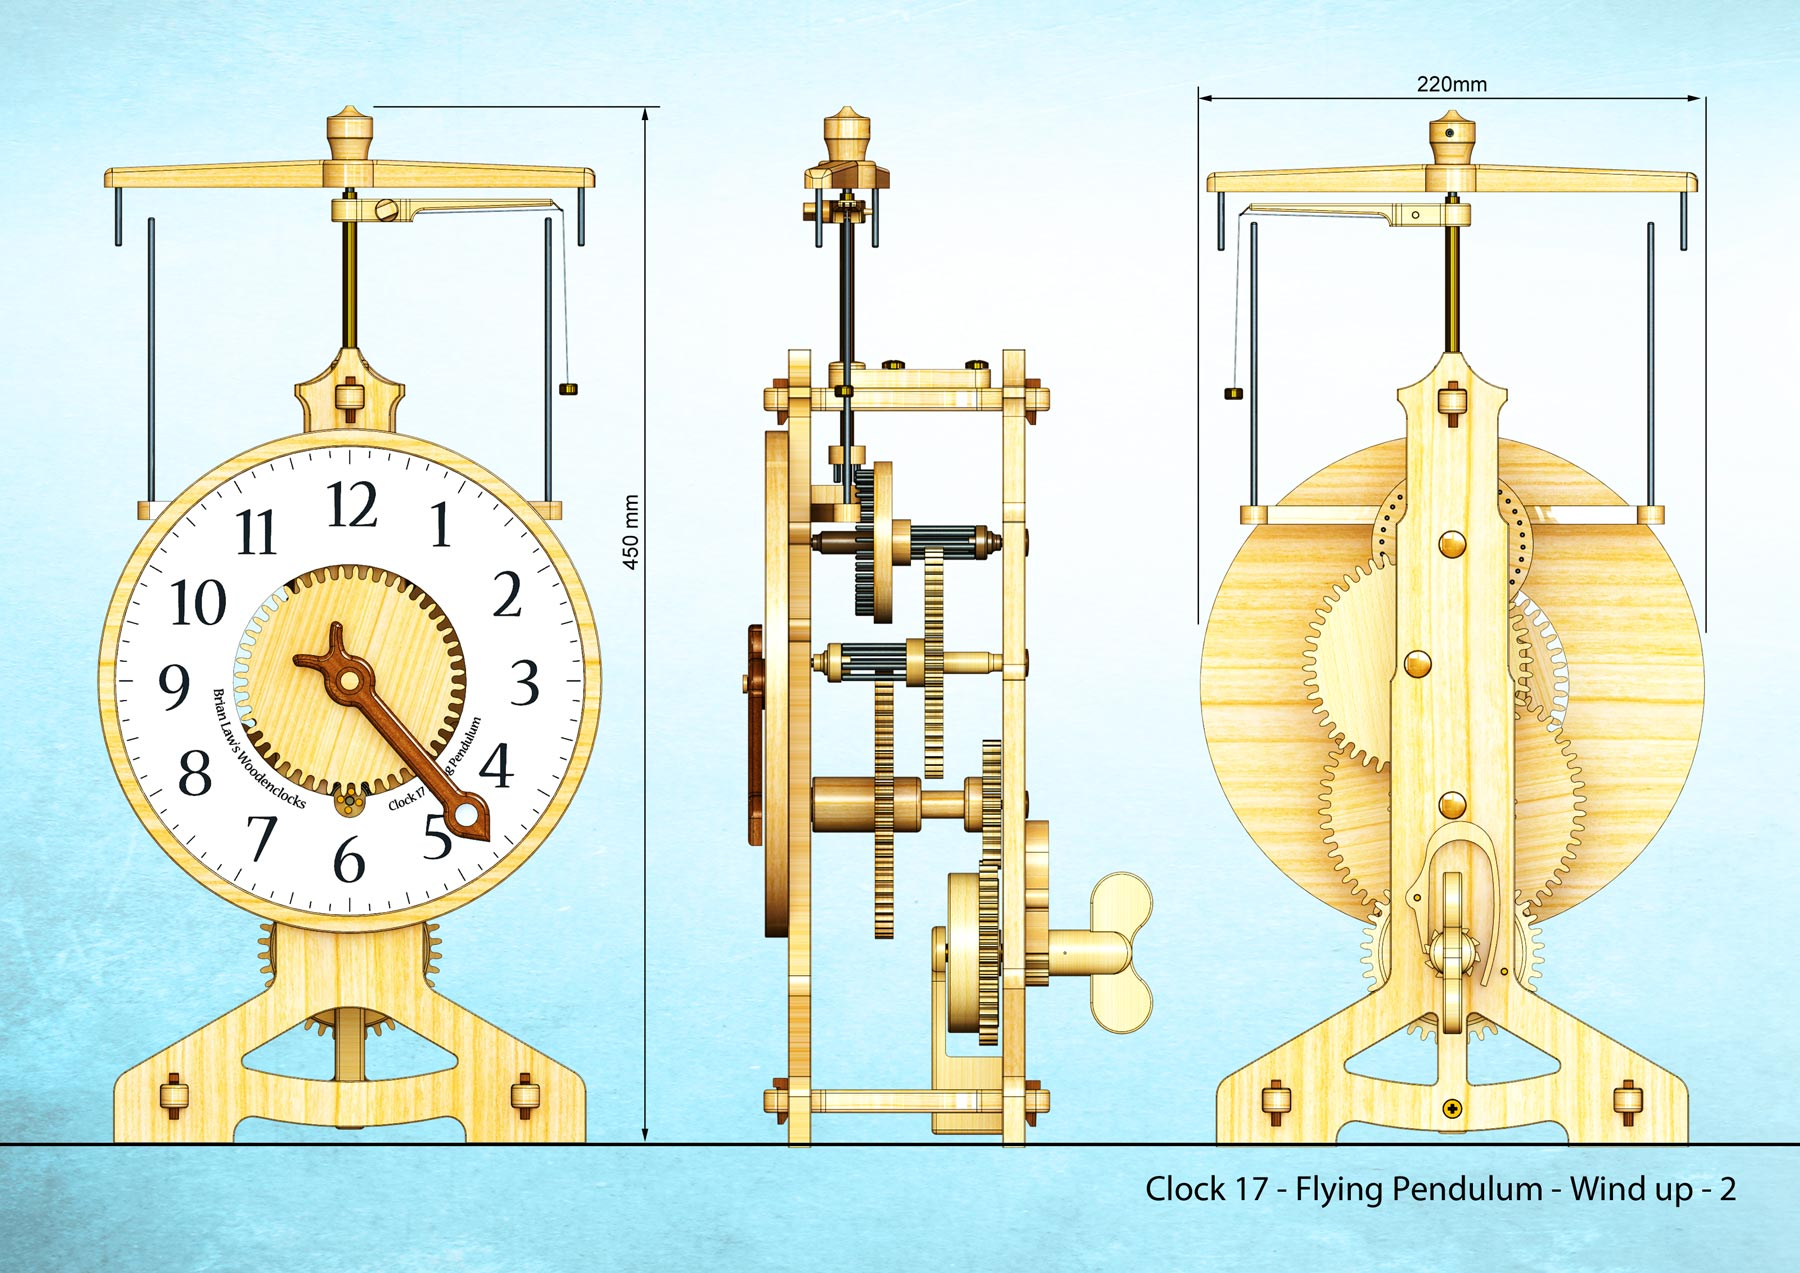 Clock 17 Flying Pendulum with wind up spring - Brian Law's Woodenclocks